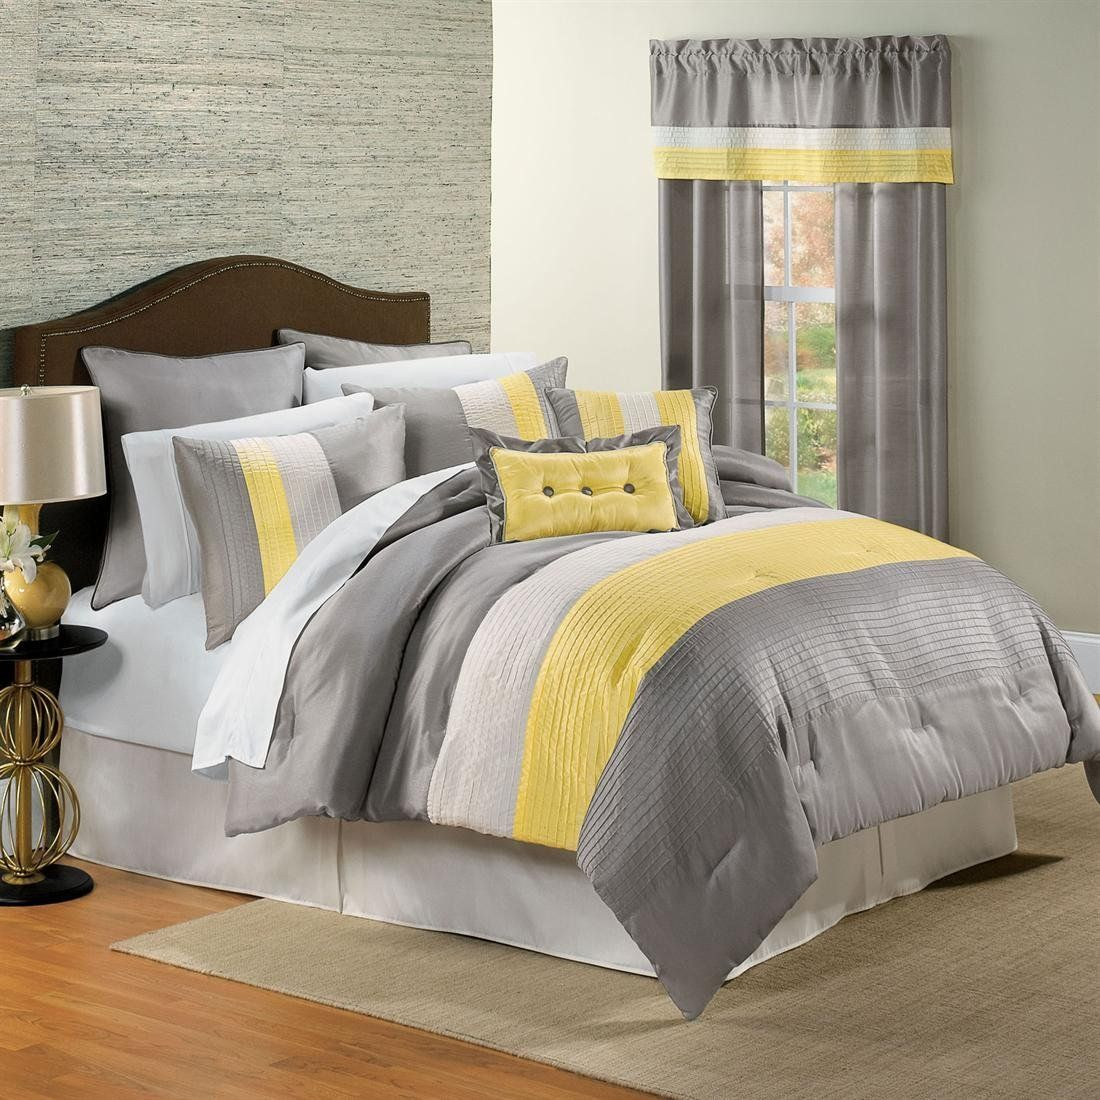 Captivating Yellow Gray Bedding Set